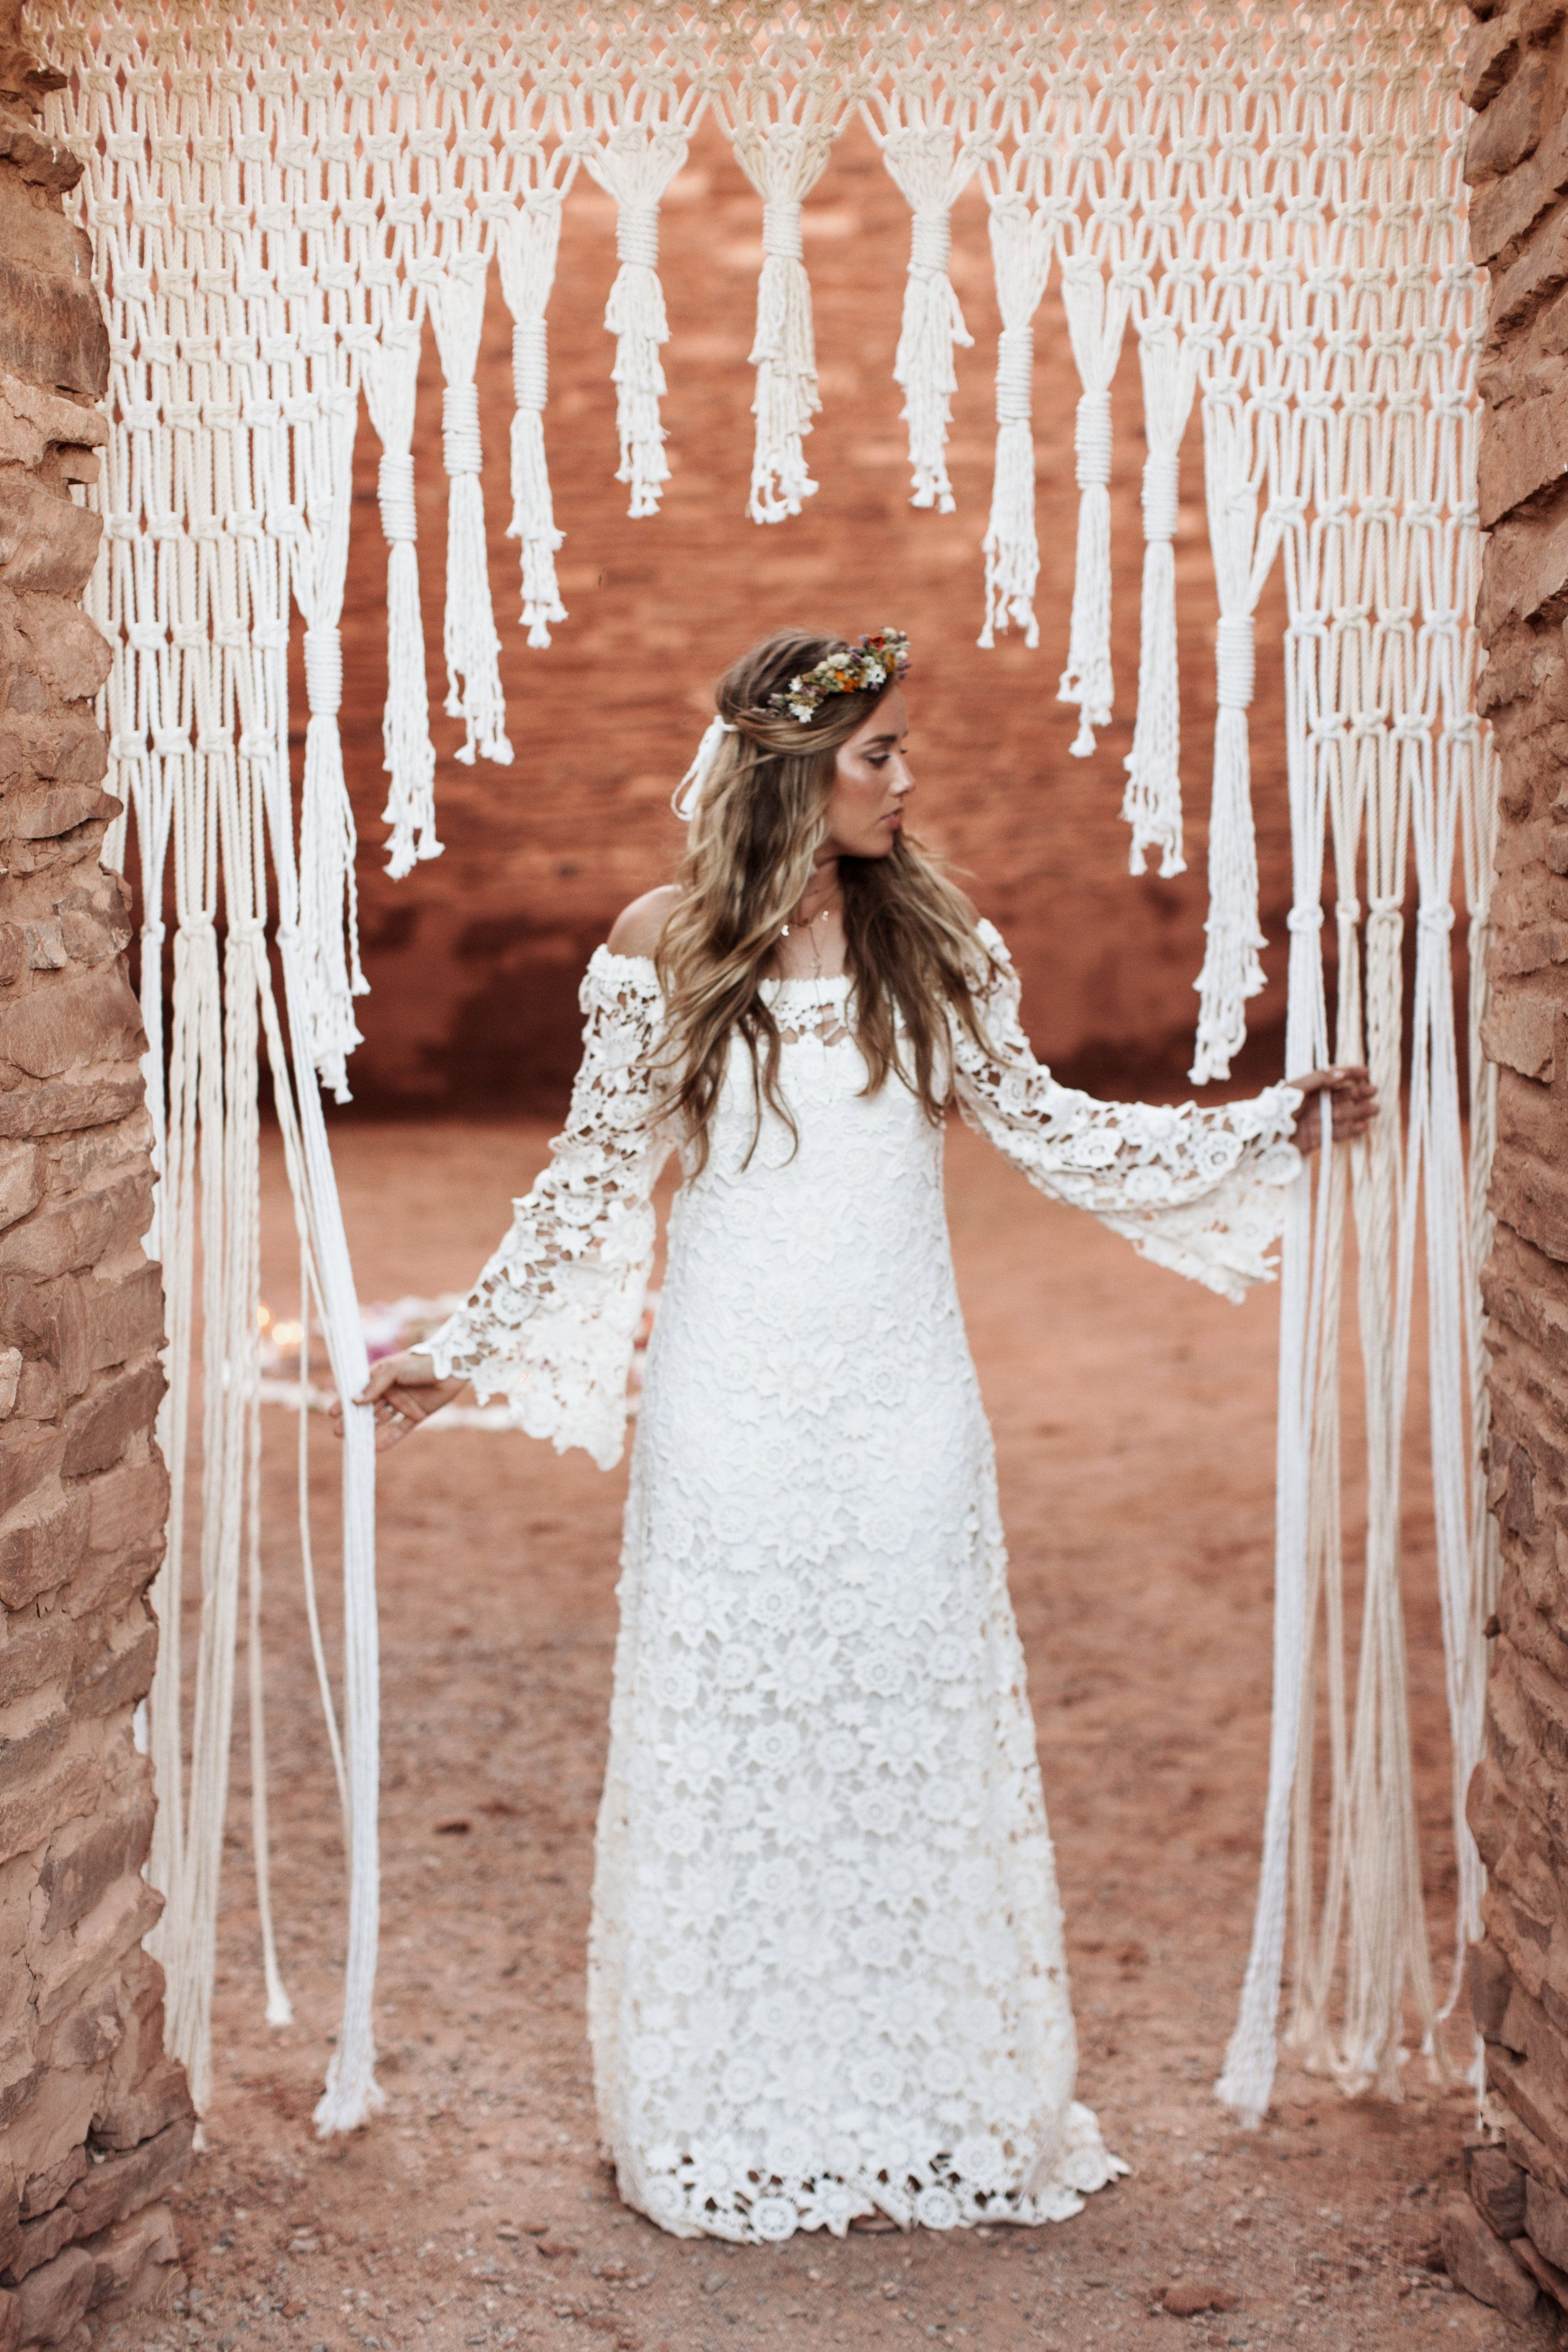 MacramÉ inspired wedding shoot at quarai ruins macrame wall